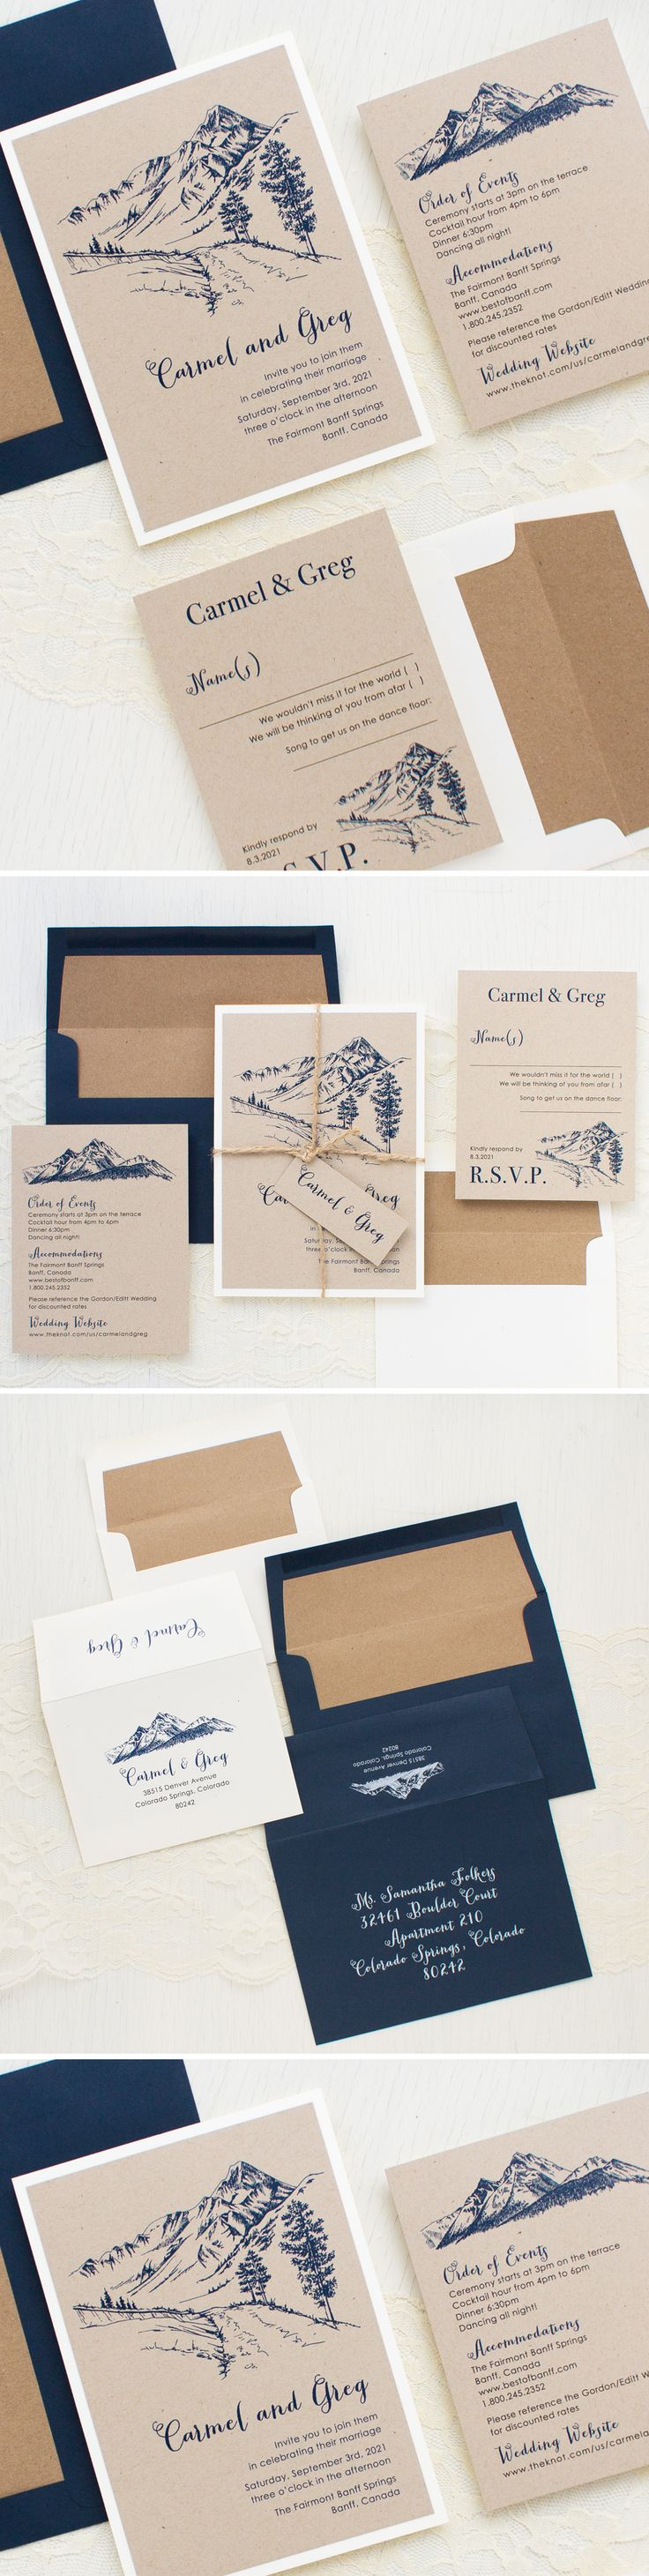 Mountain inspired wedding invitations with warm taupe